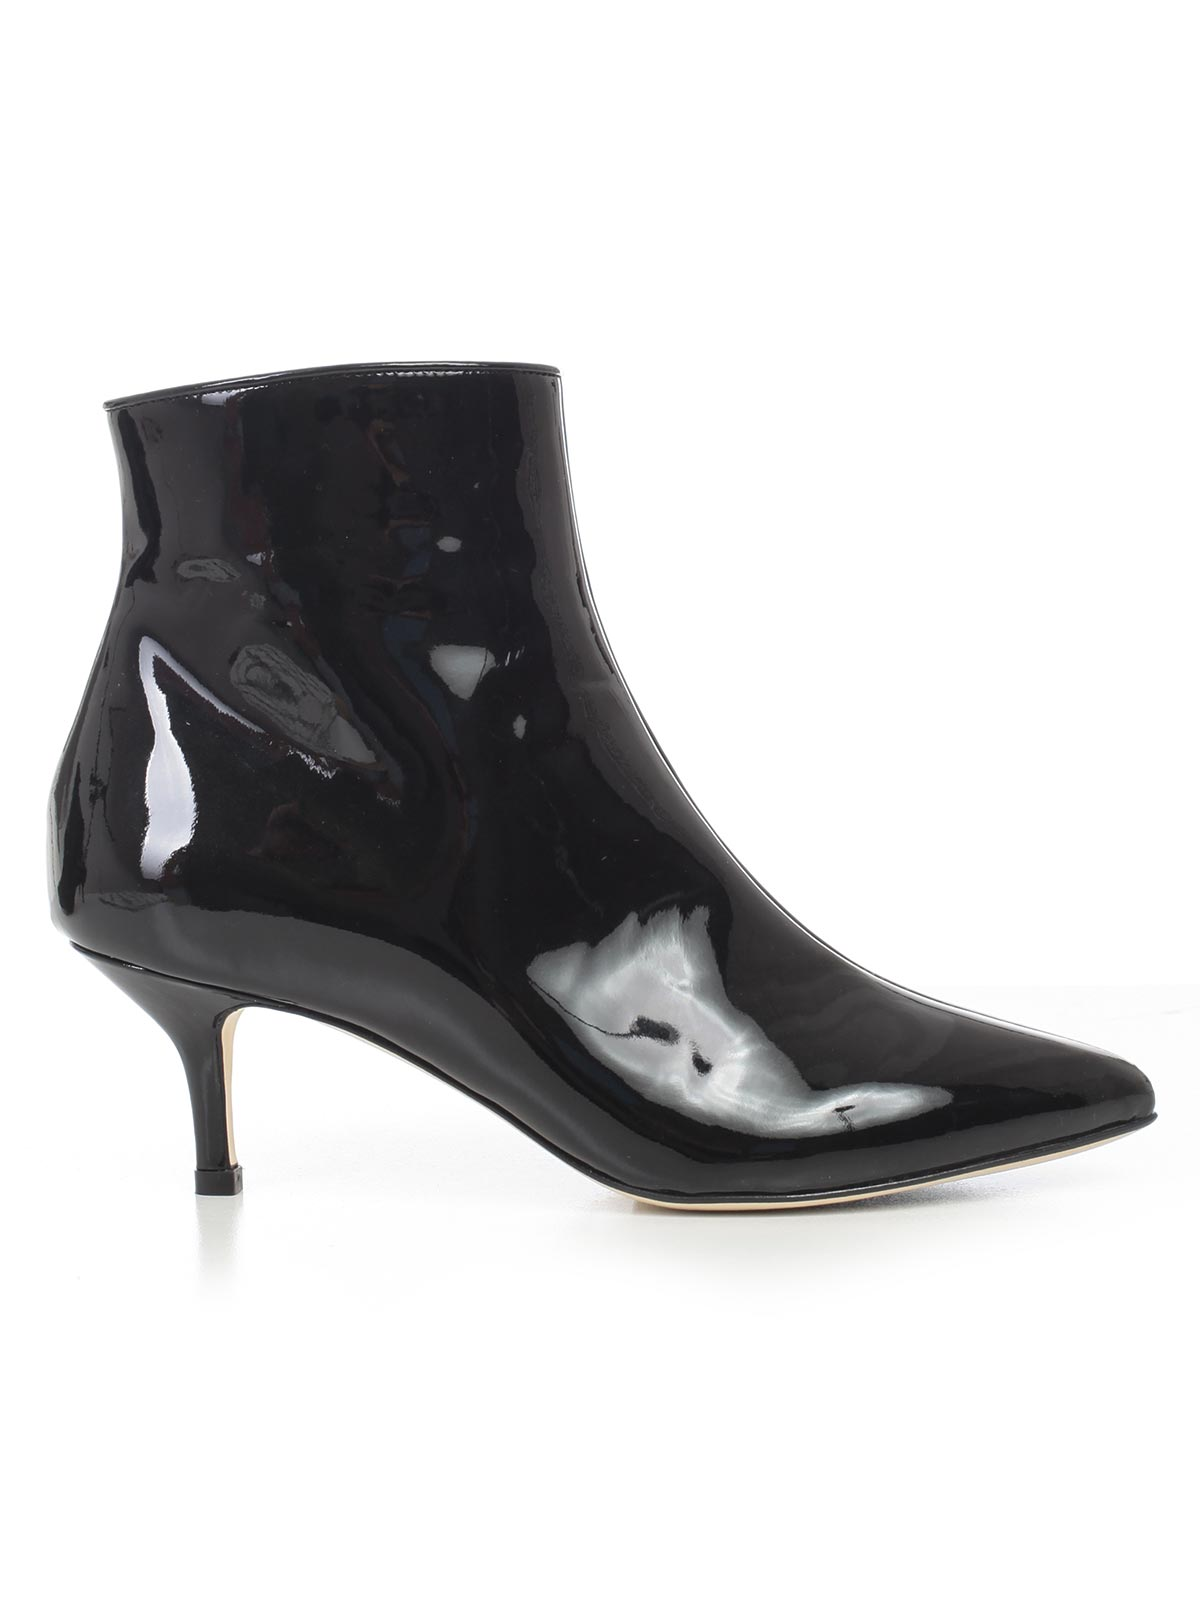 Picture of Polly Plume Shoes